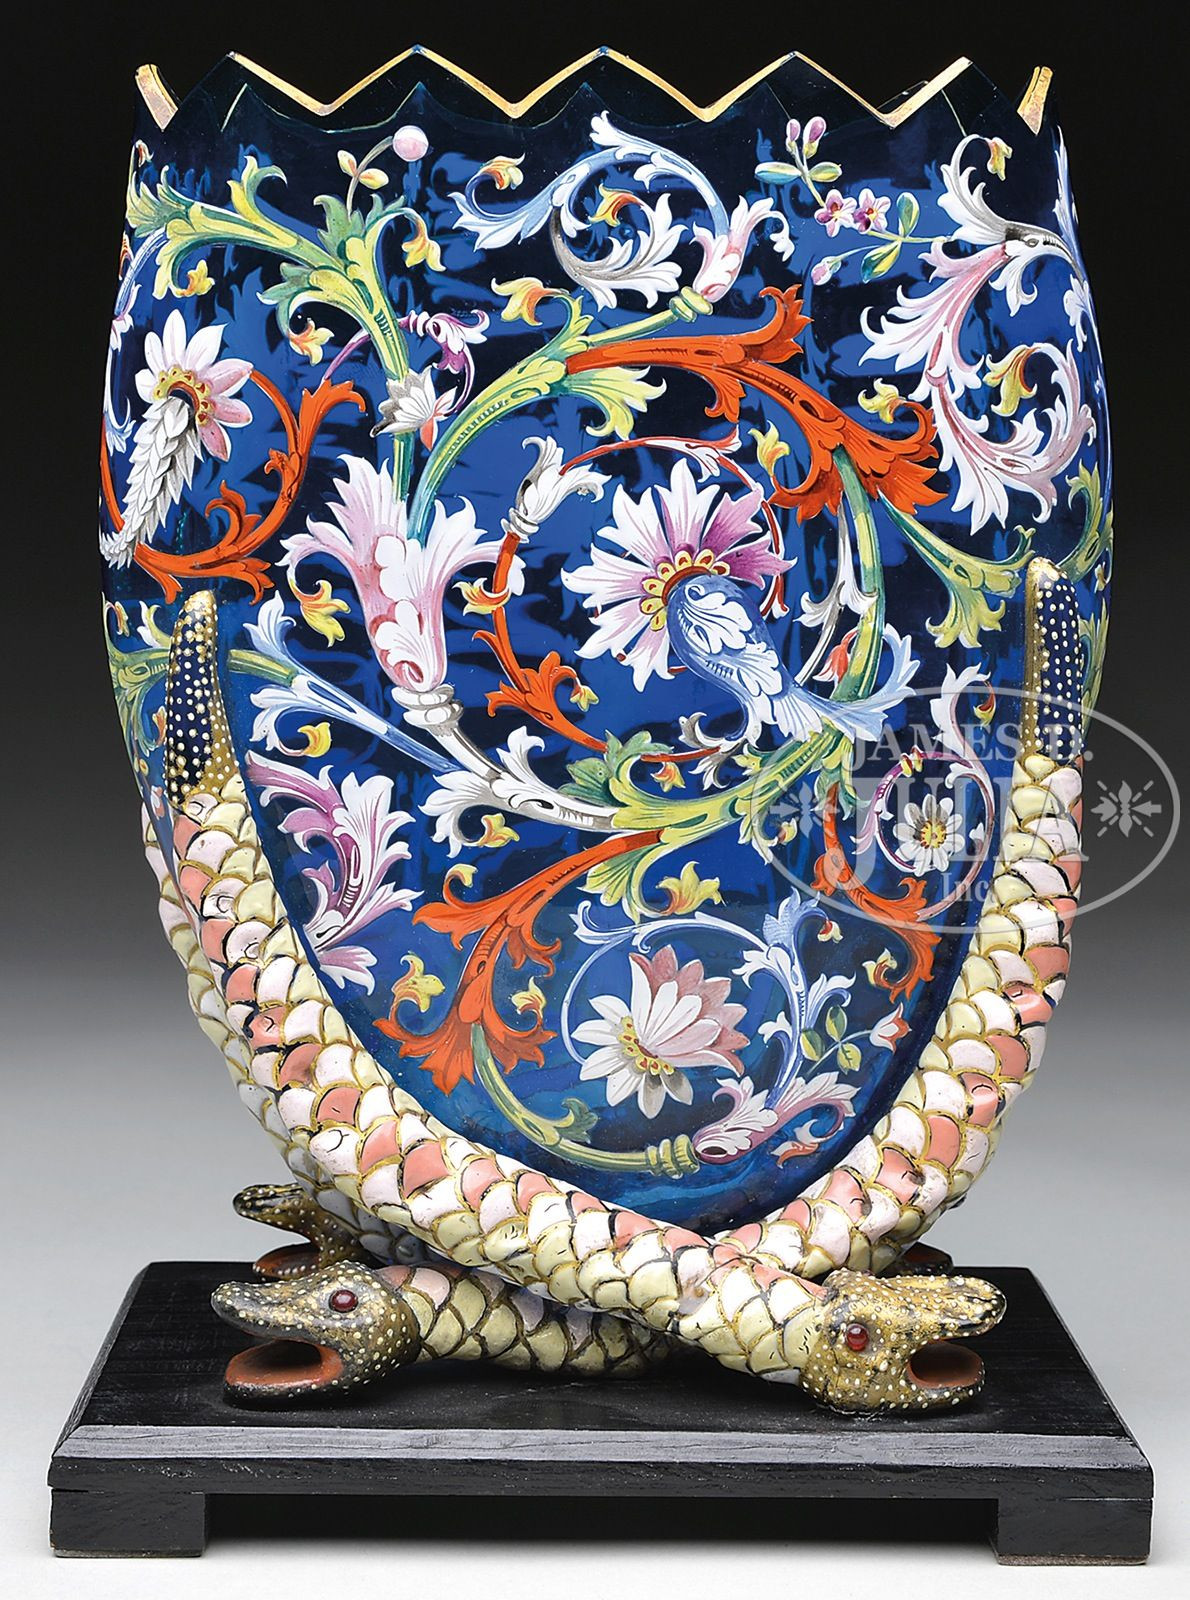 antique bohemian glass vase of moser decorated vase is pictured in the book moser glass the with regard to moser decorated vase is pictured in the book moser glass the klabin collection by g